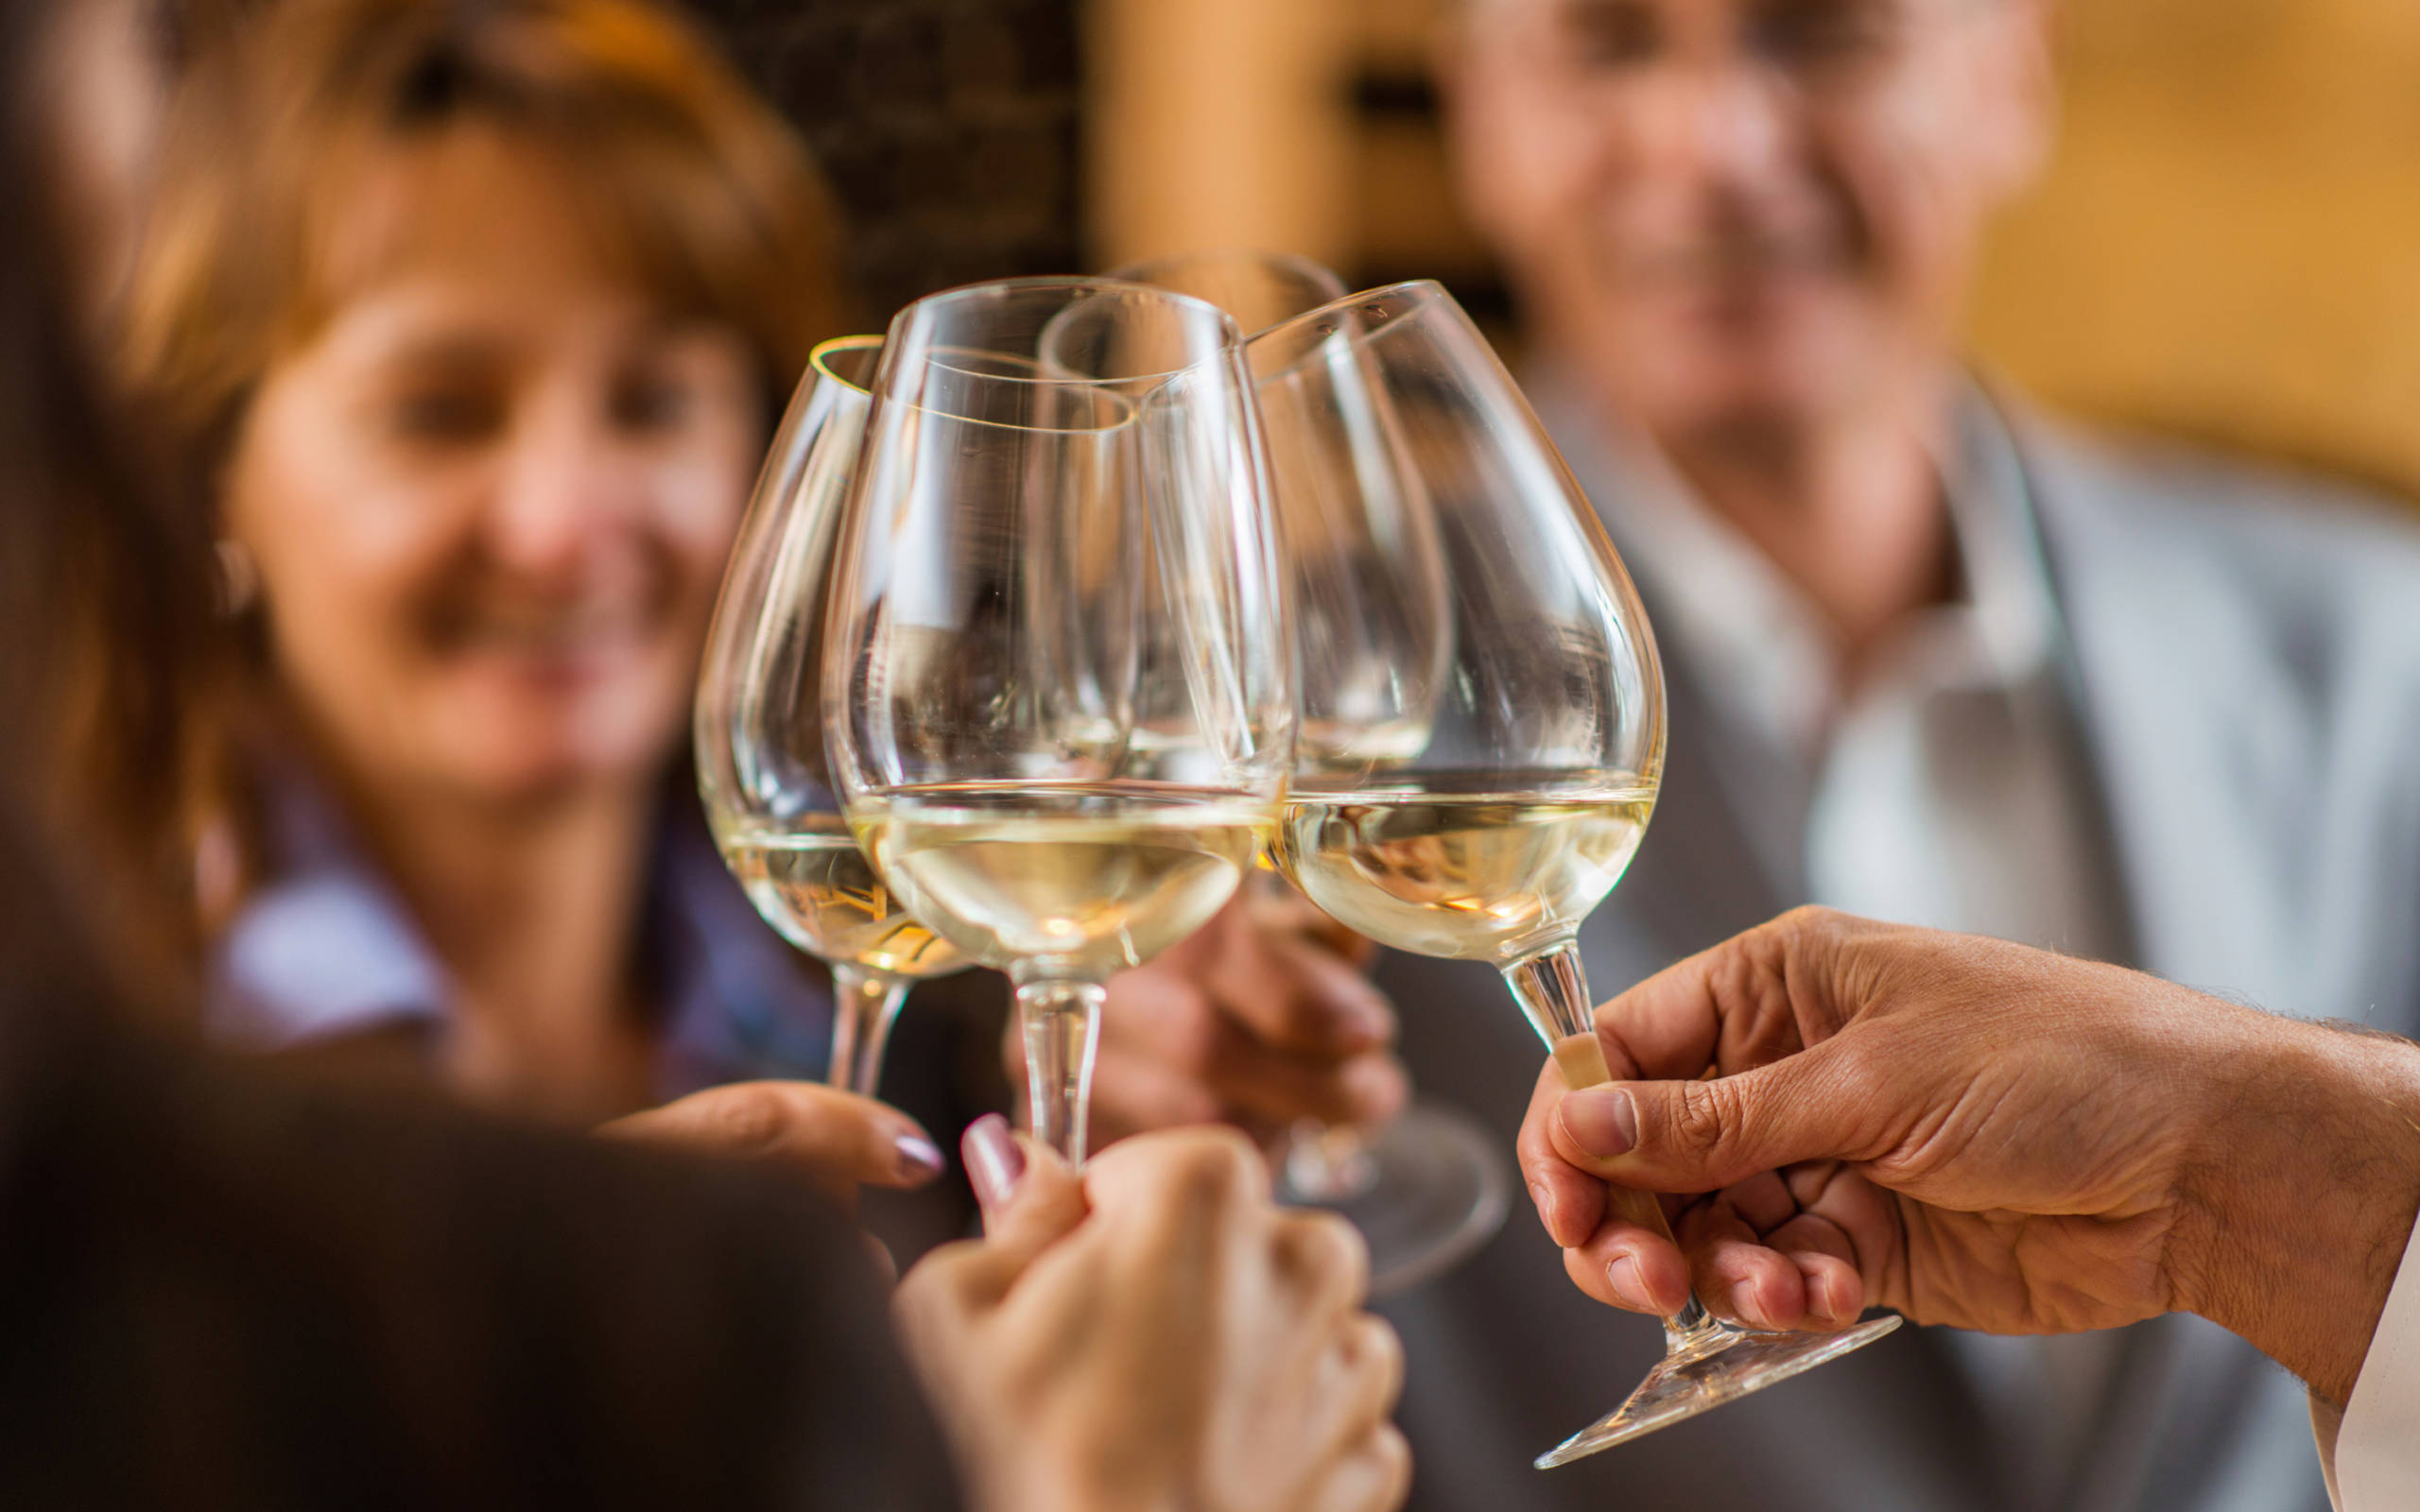 Shop-Stock-image-people-with-glasses-tasting-cheers-3000x1875